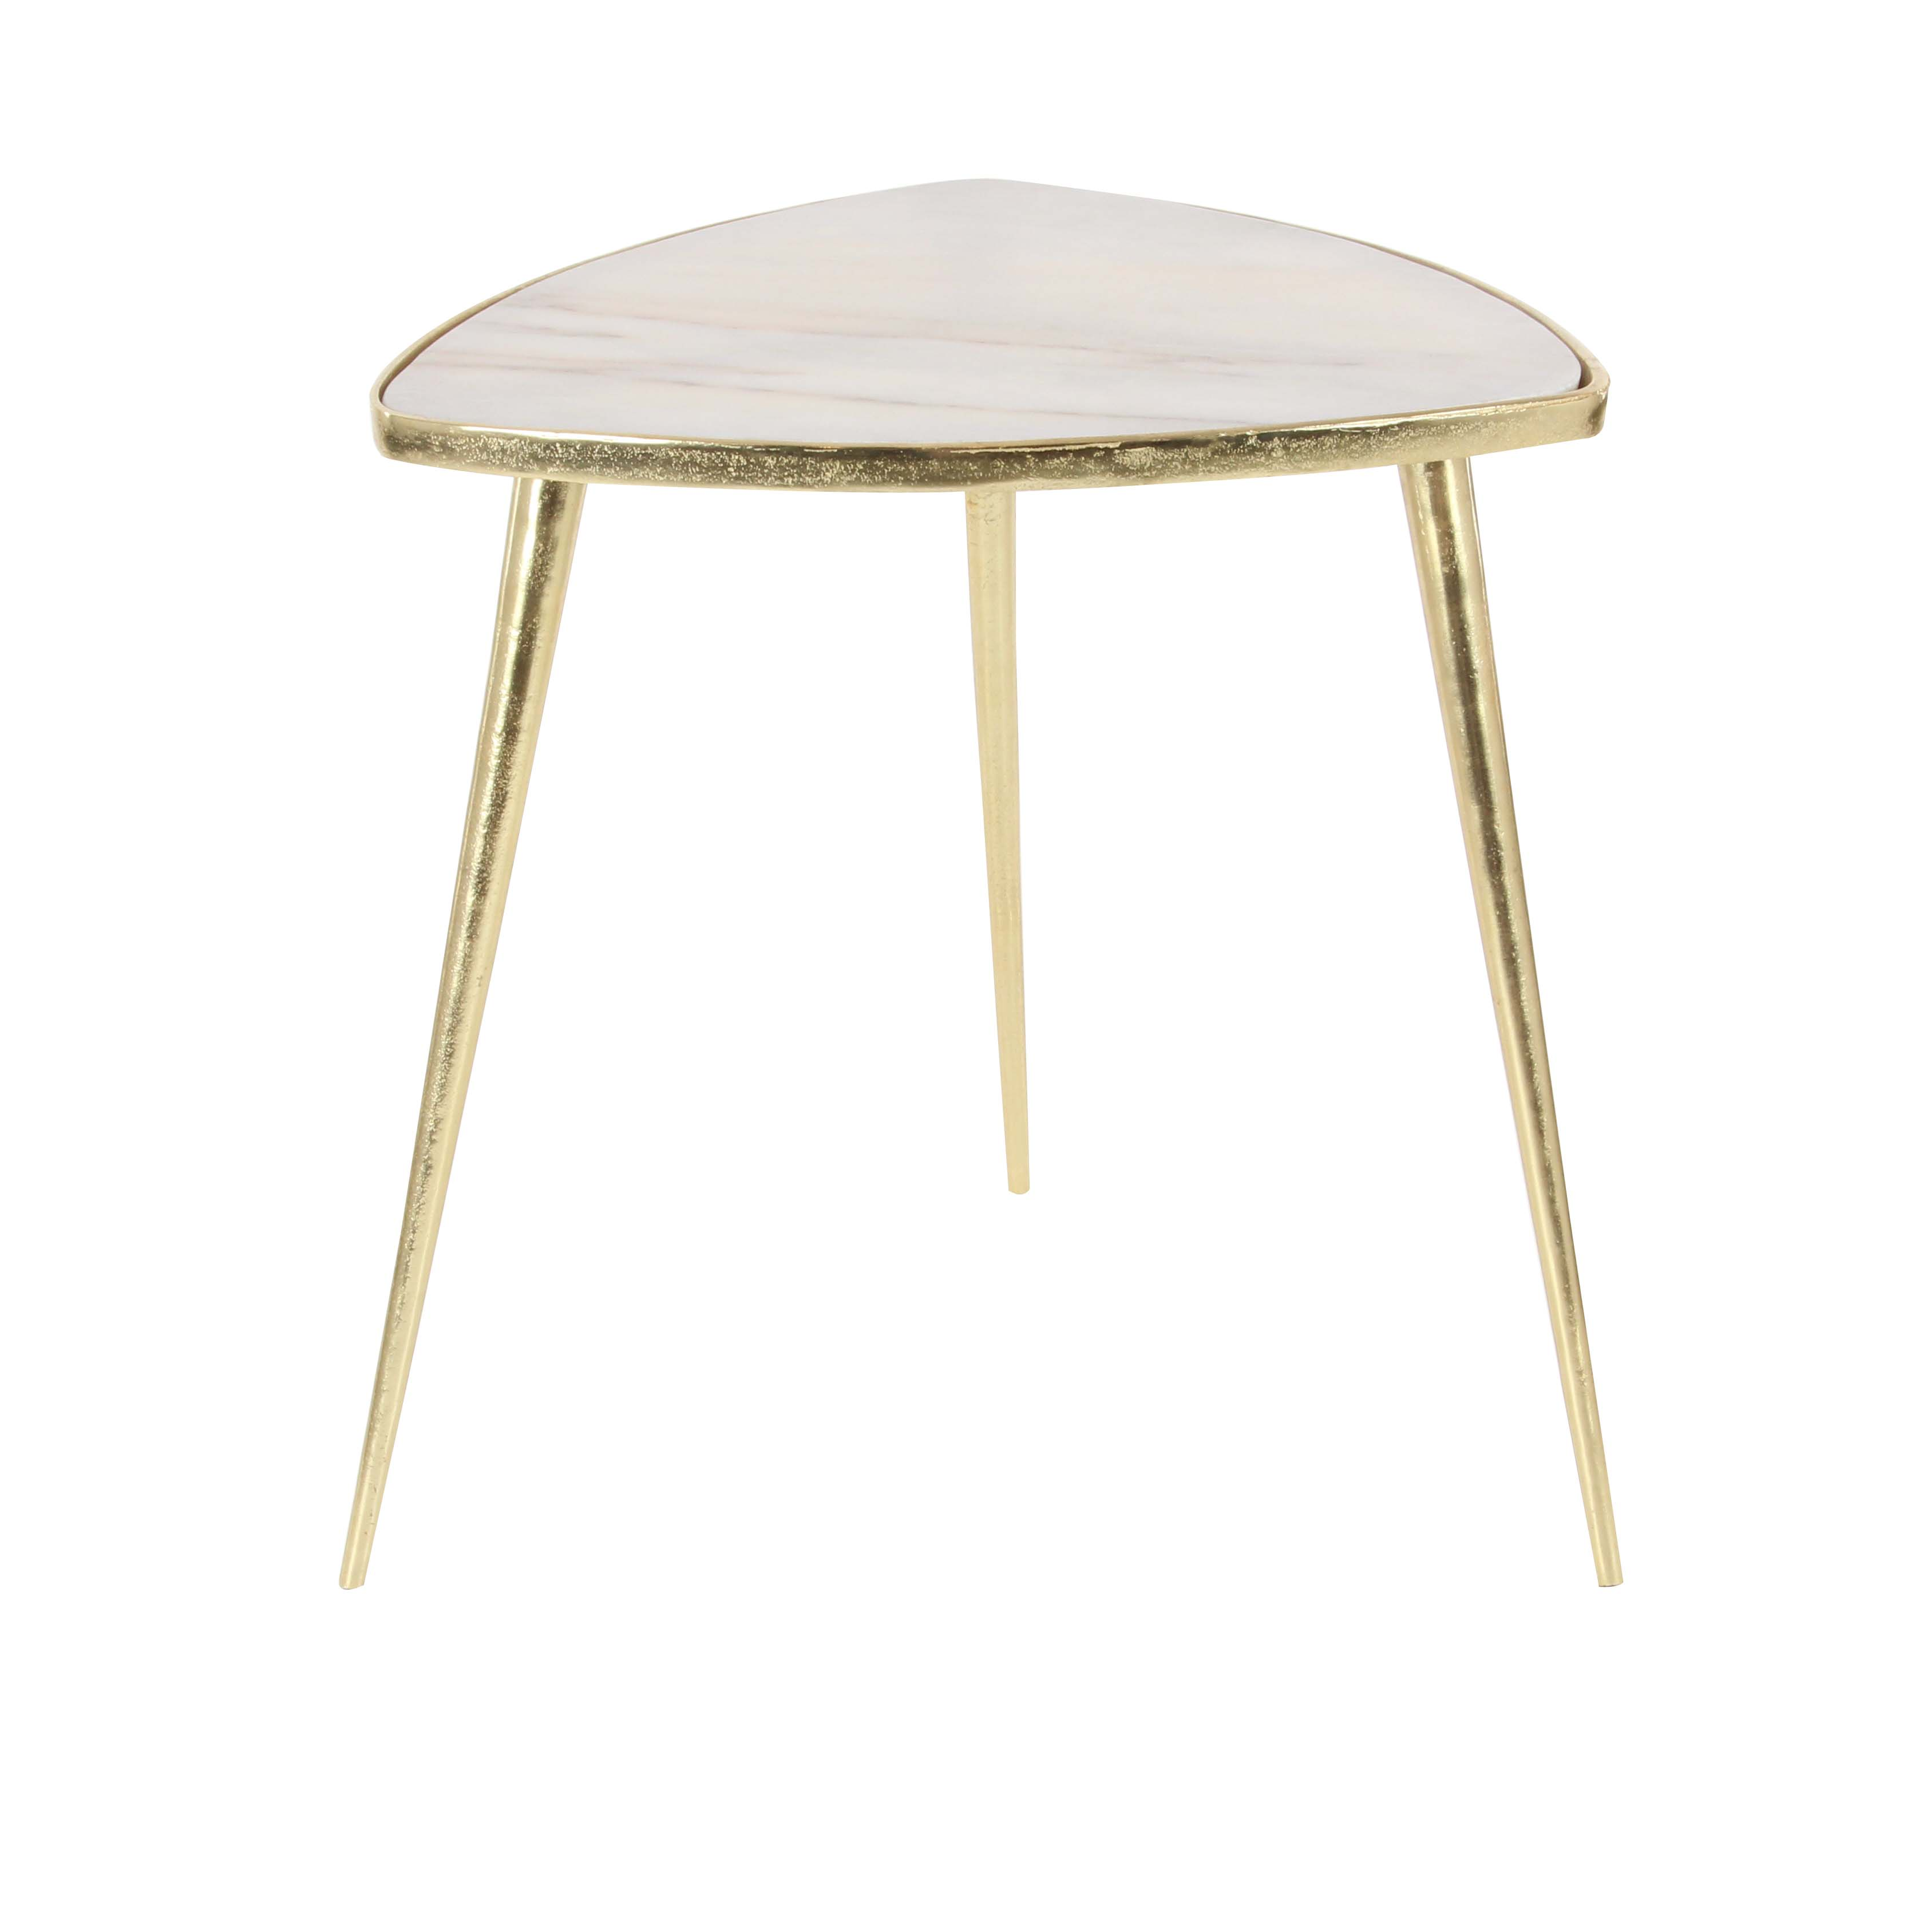 Decmode Modern 21 X 20 Inch Gold Aluminum and White Marble Triangular Accent Table, Gold by DecMode